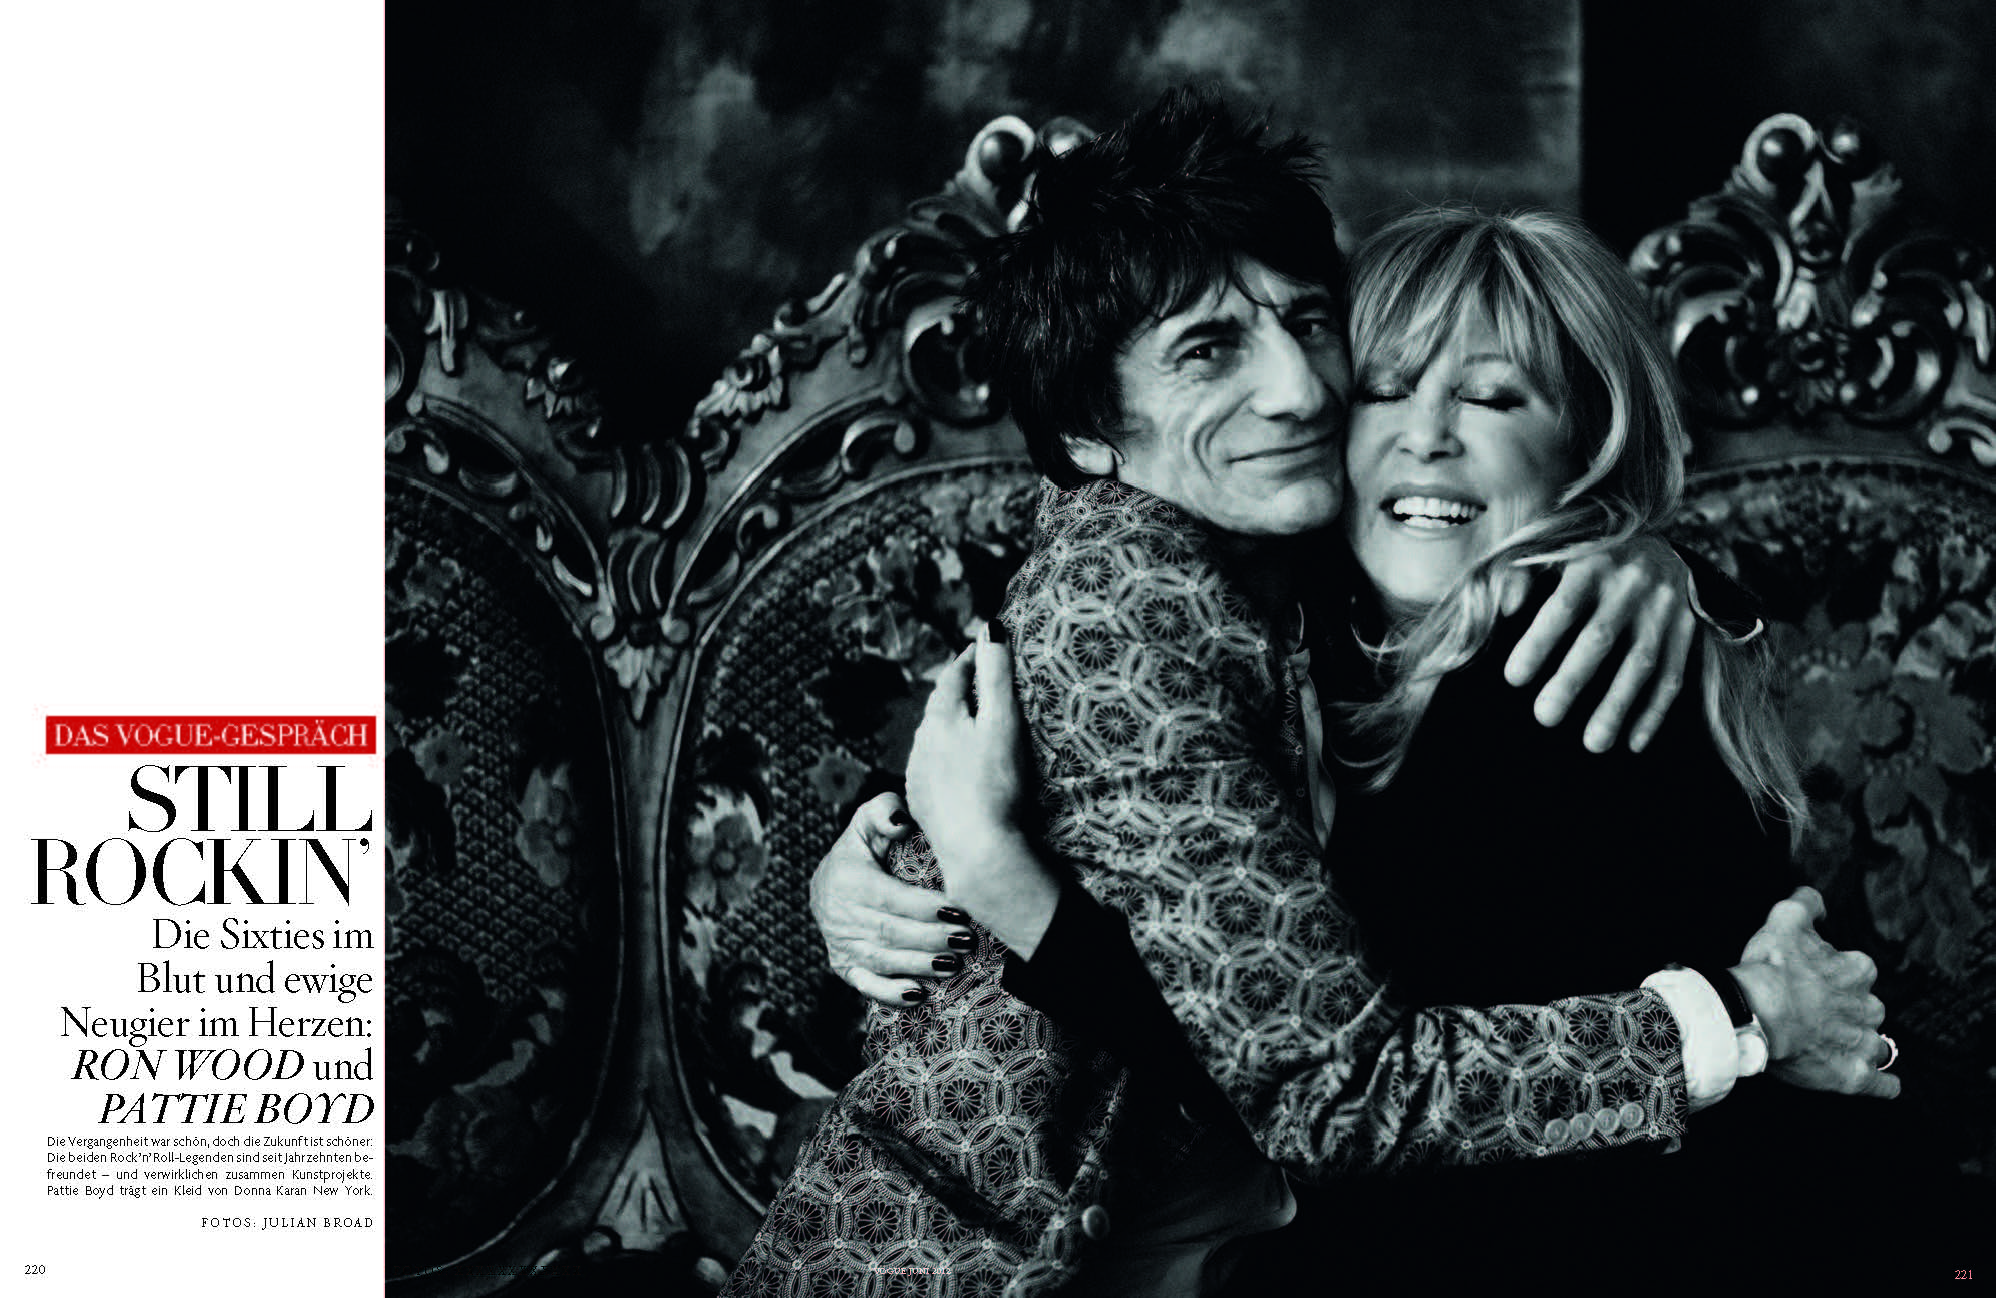 Ronnie Wood + Pattie Boyd